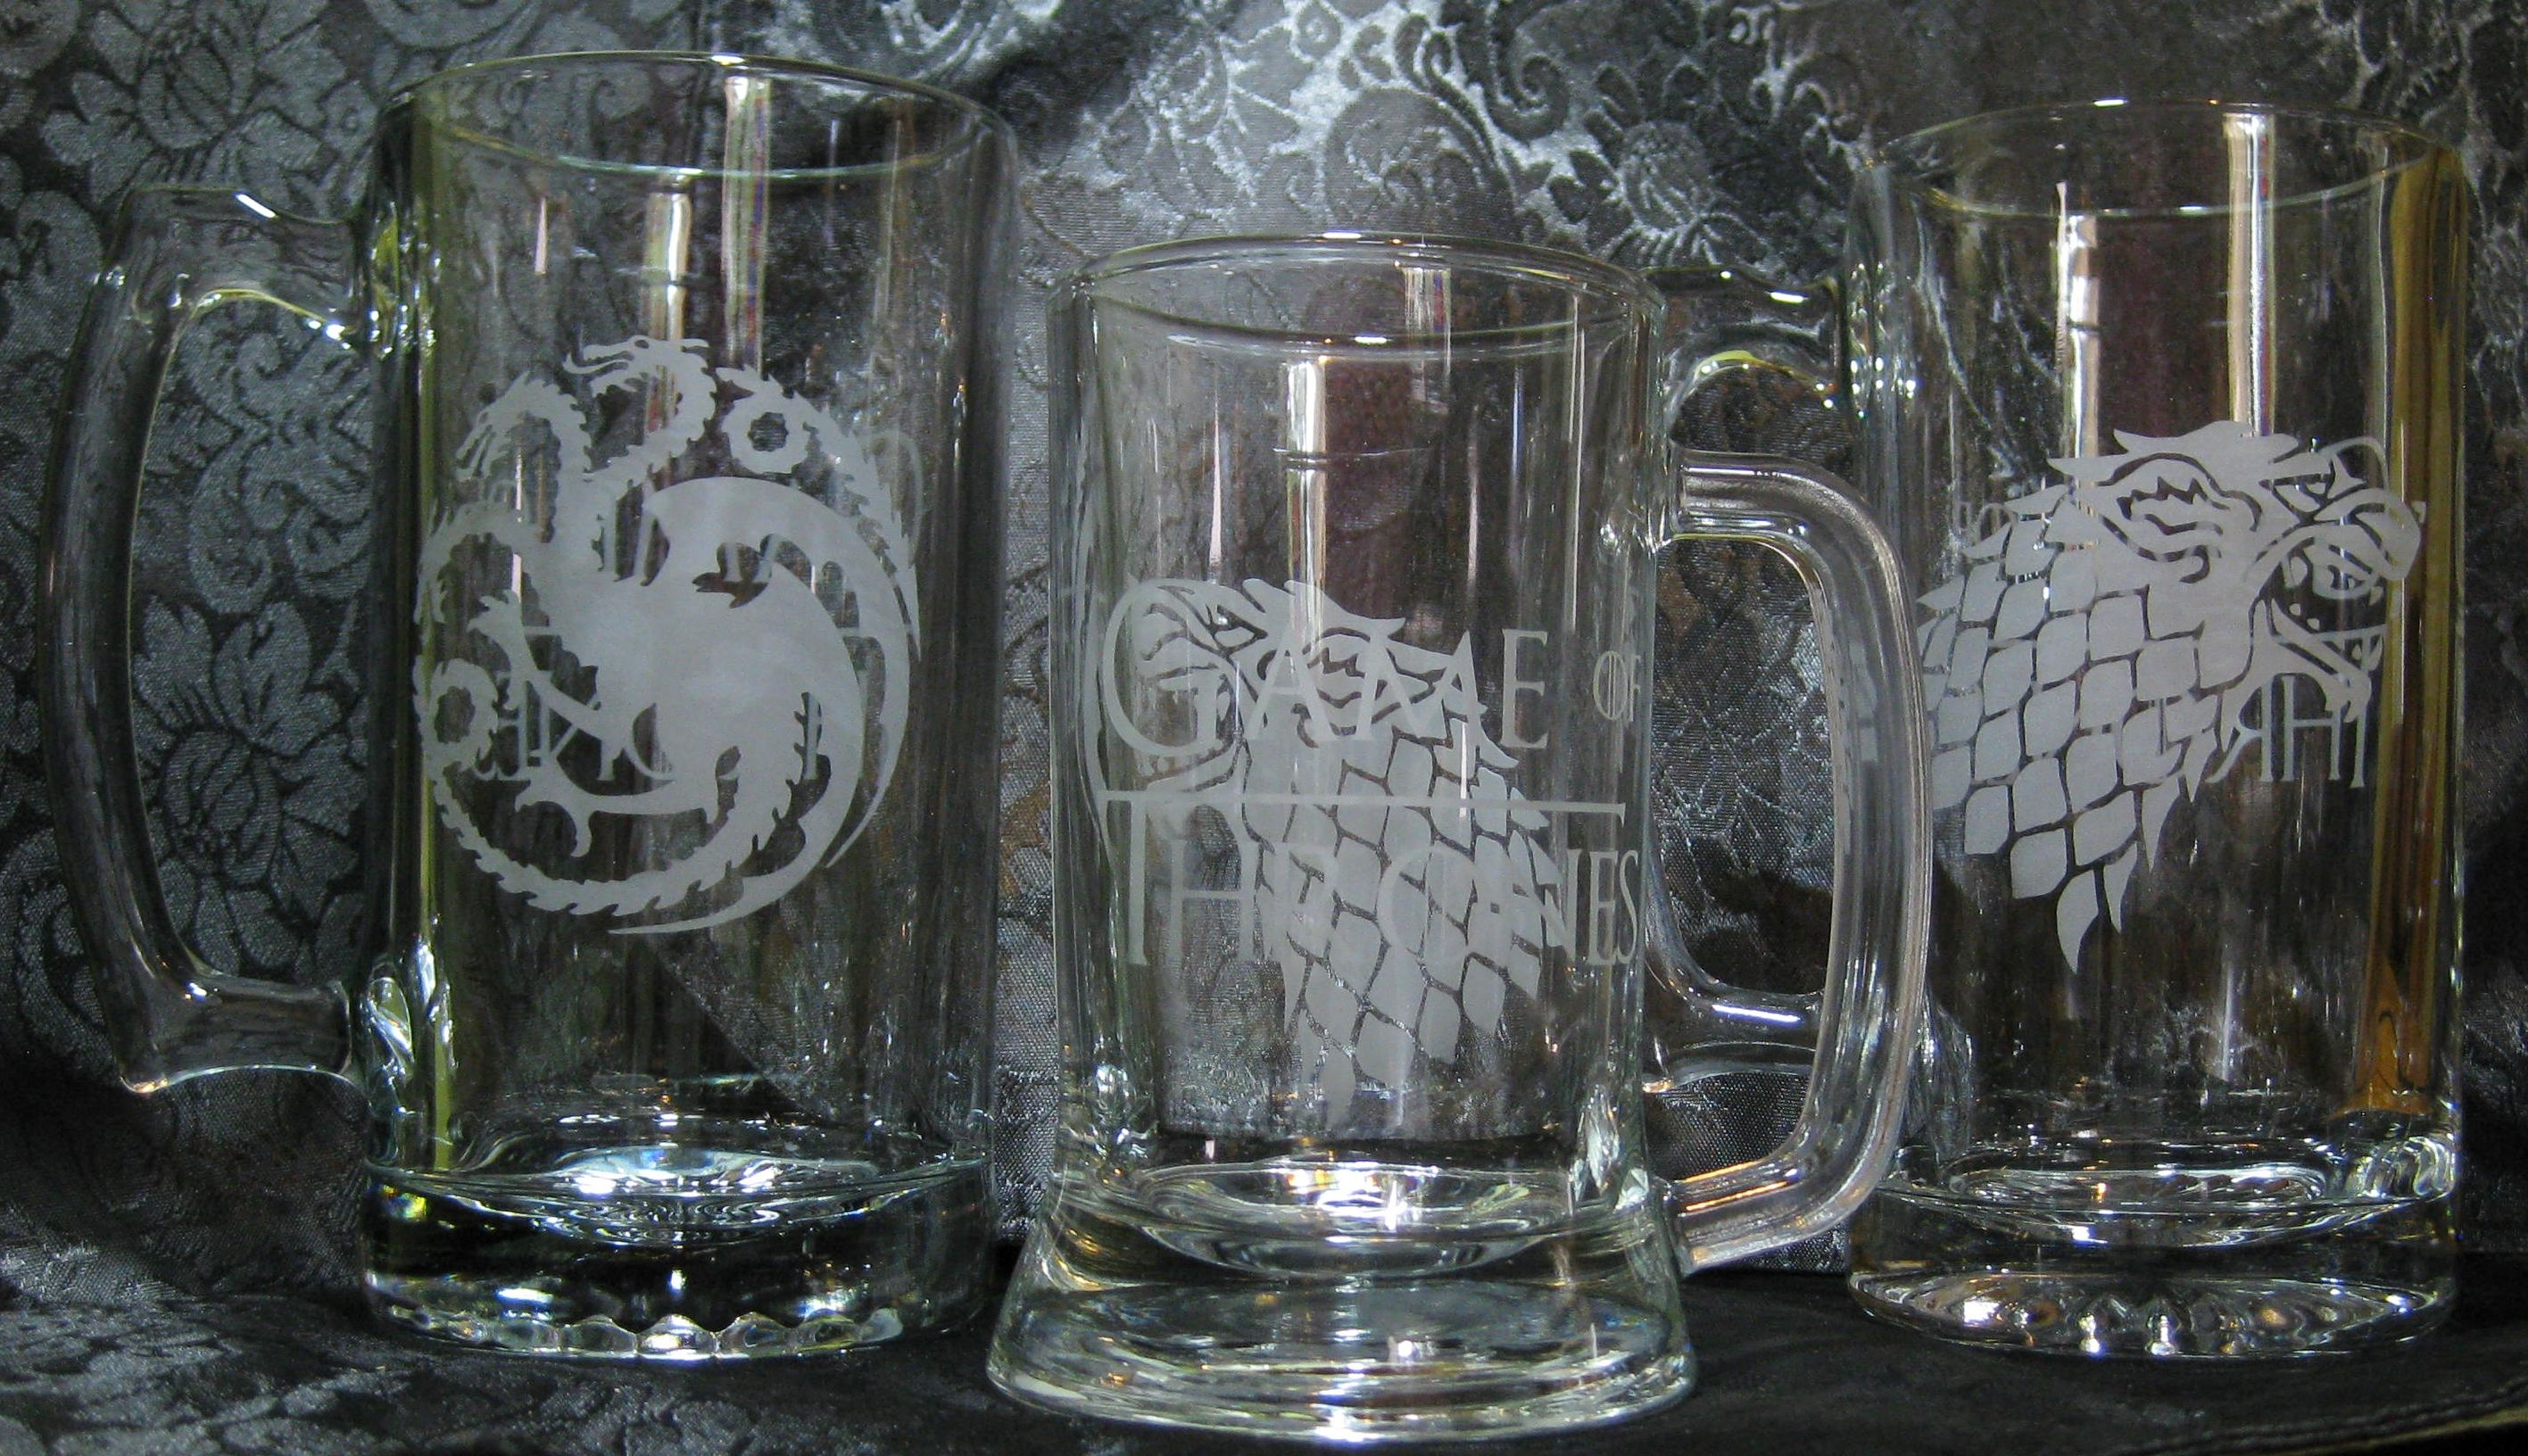 Game of Thrones Beer Mugs by Whiskey Wine & Good Chimes